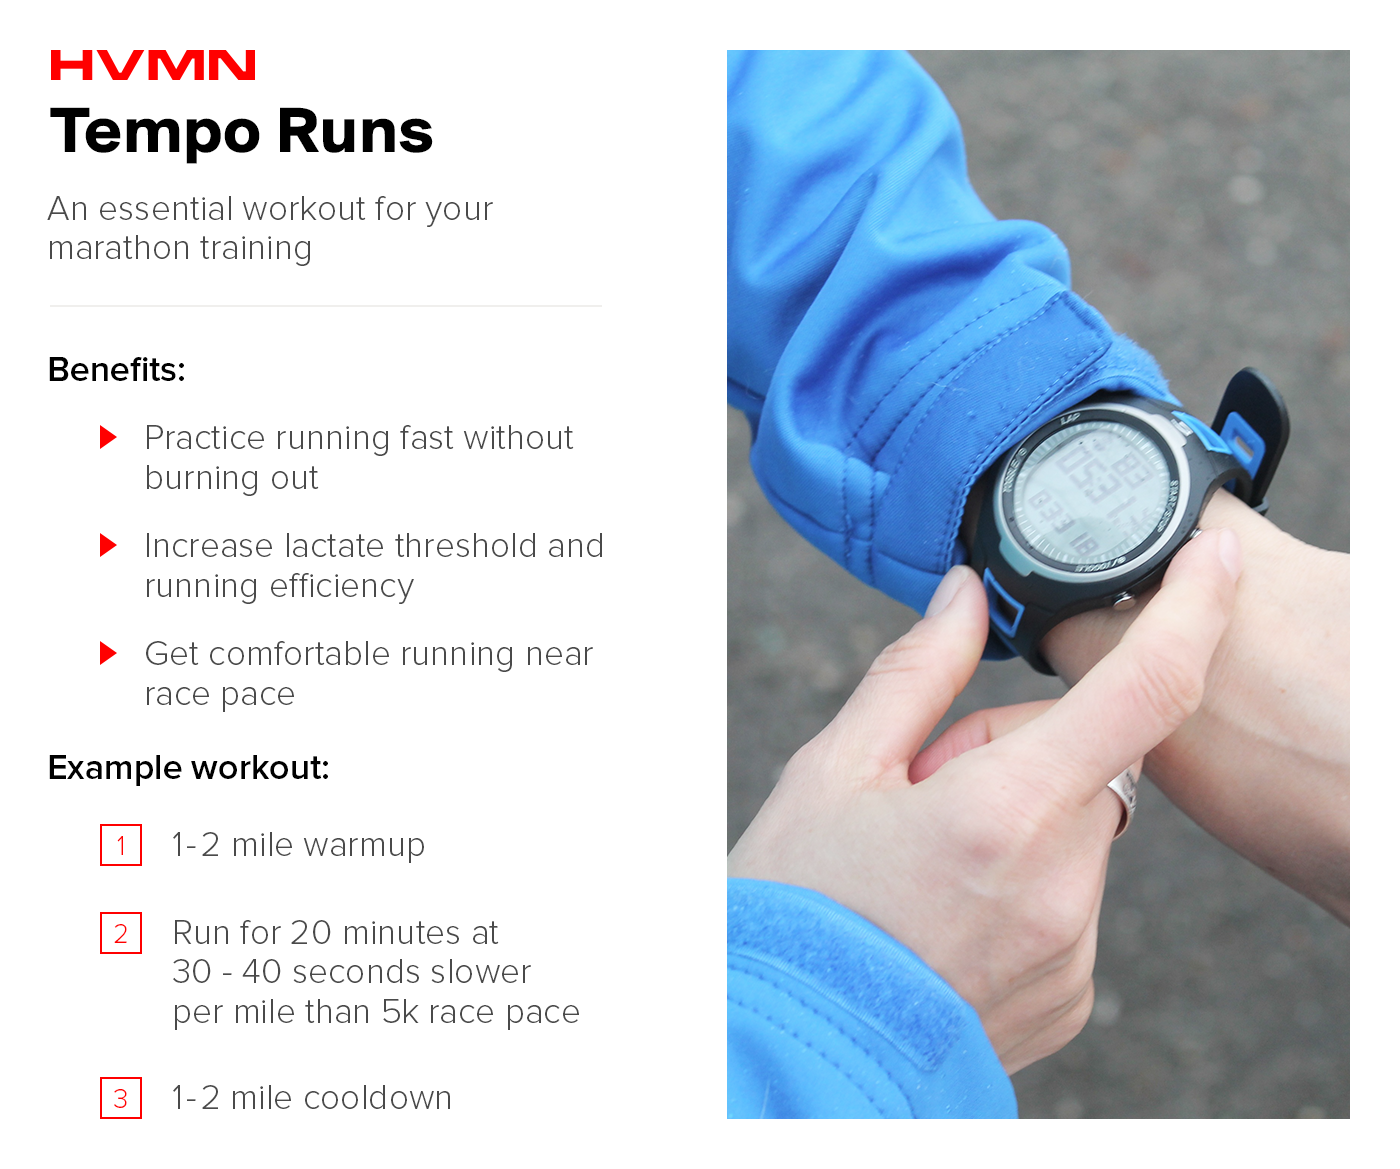 A woman checking her wrist watch, representing how to do a tempo run